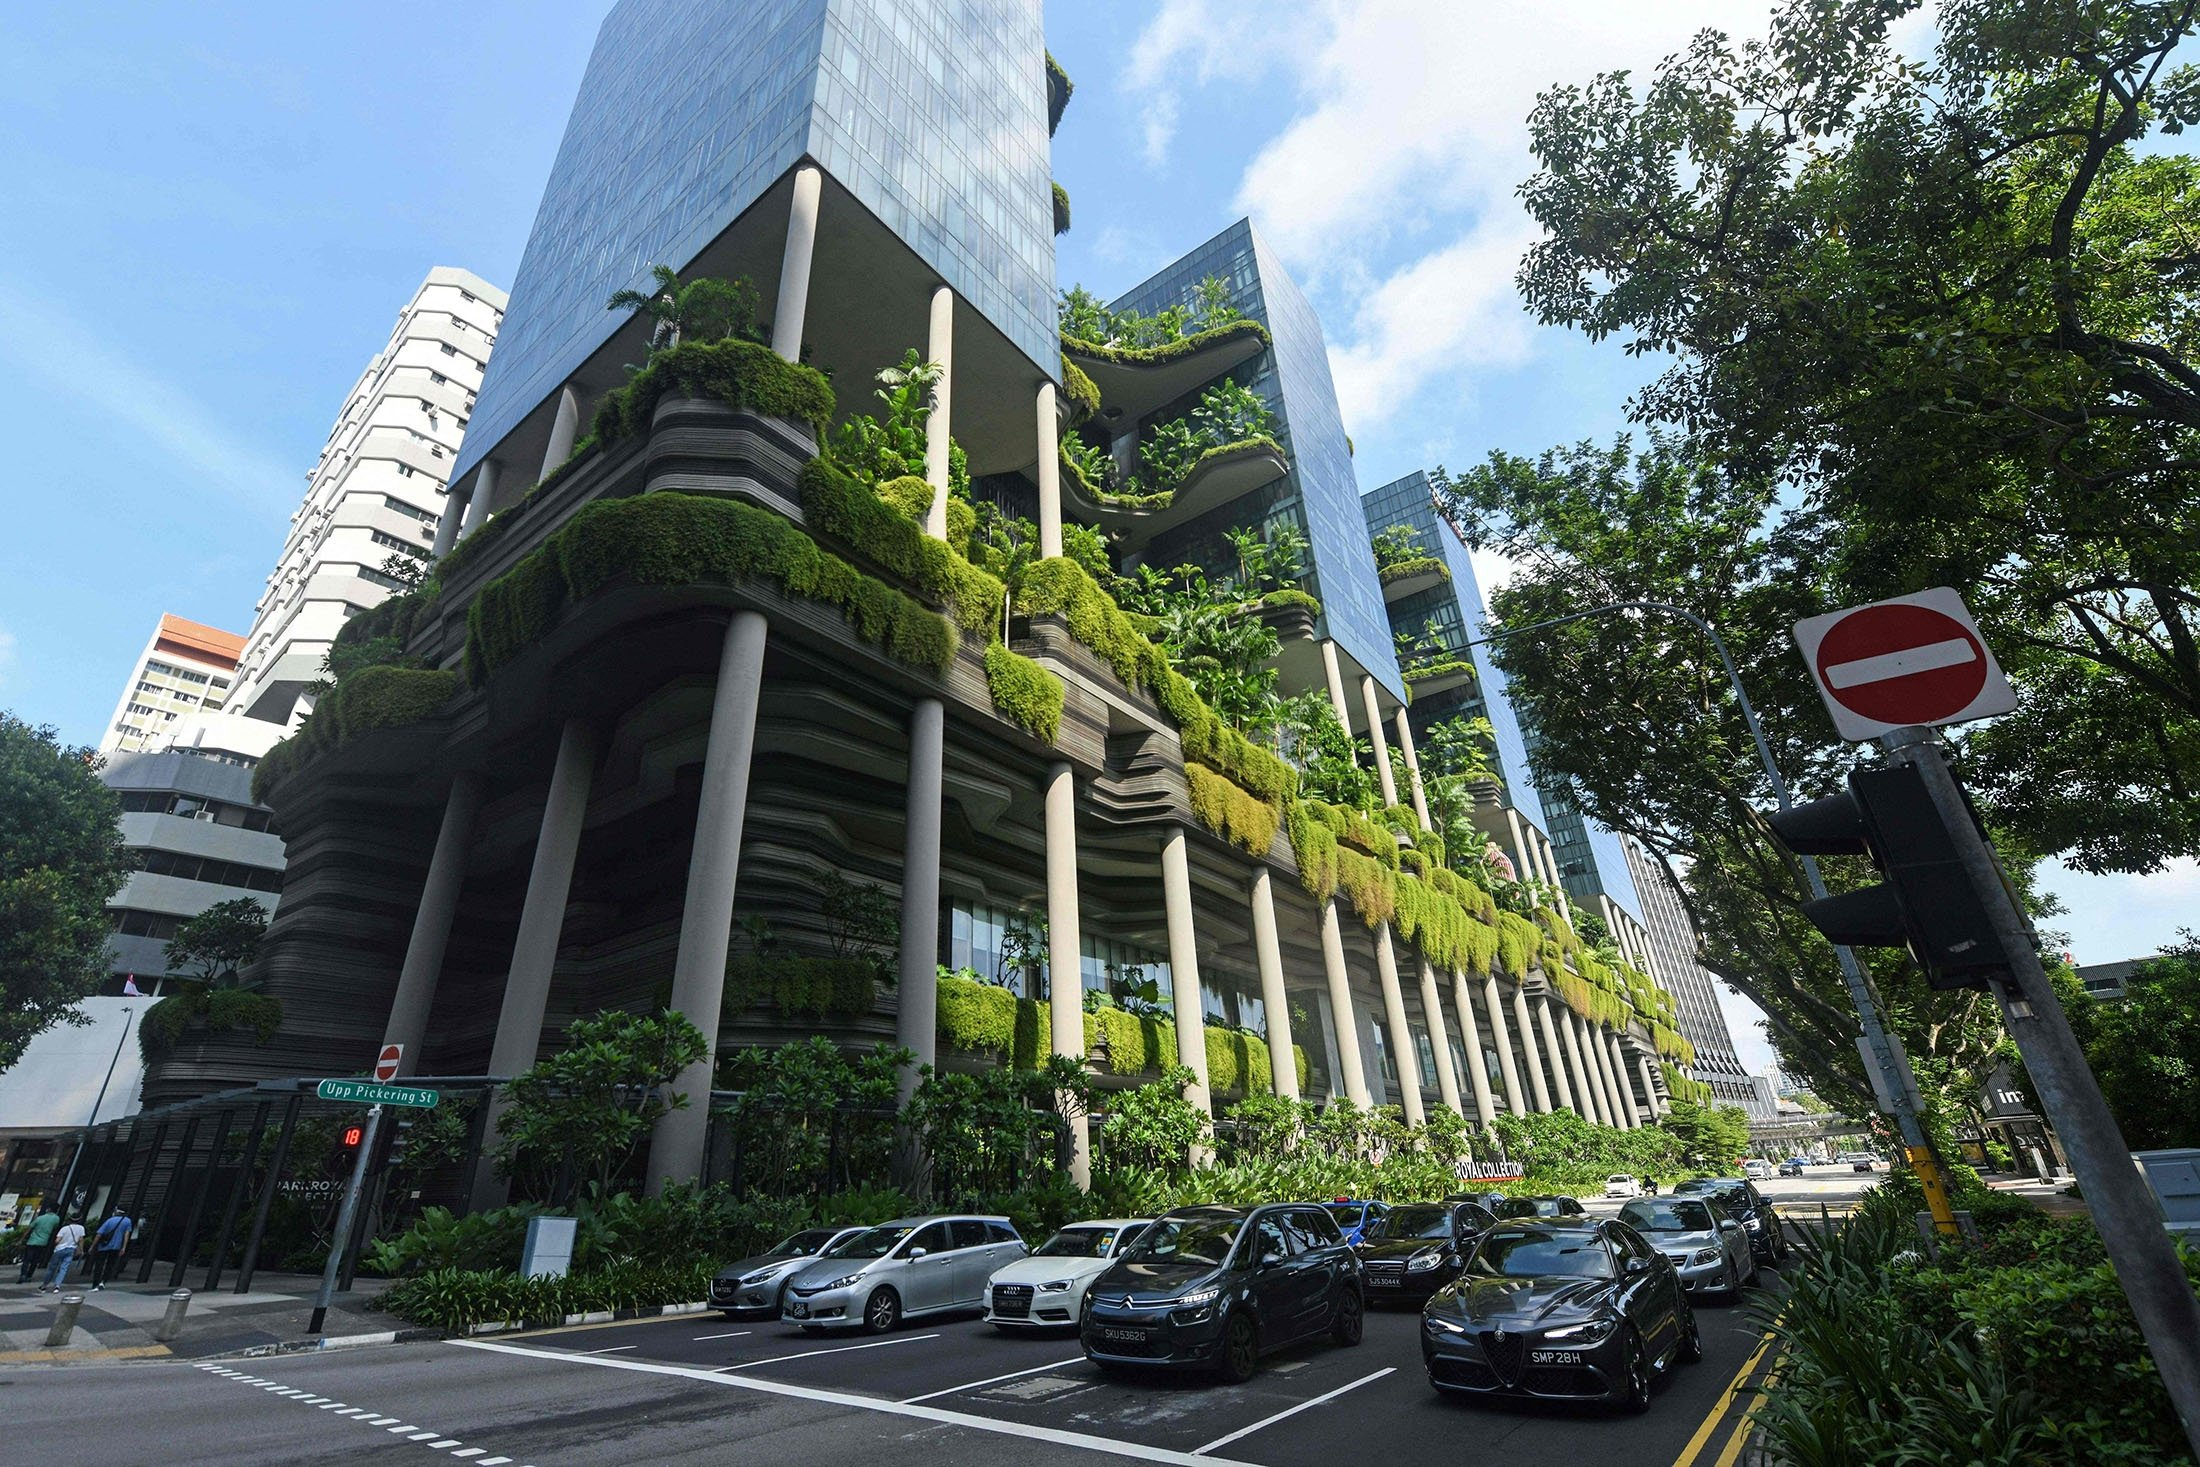 A view of the Park Royal Collection Hotel at Pickering Street in Singapore, July 23, 2021. (AFP Photo)